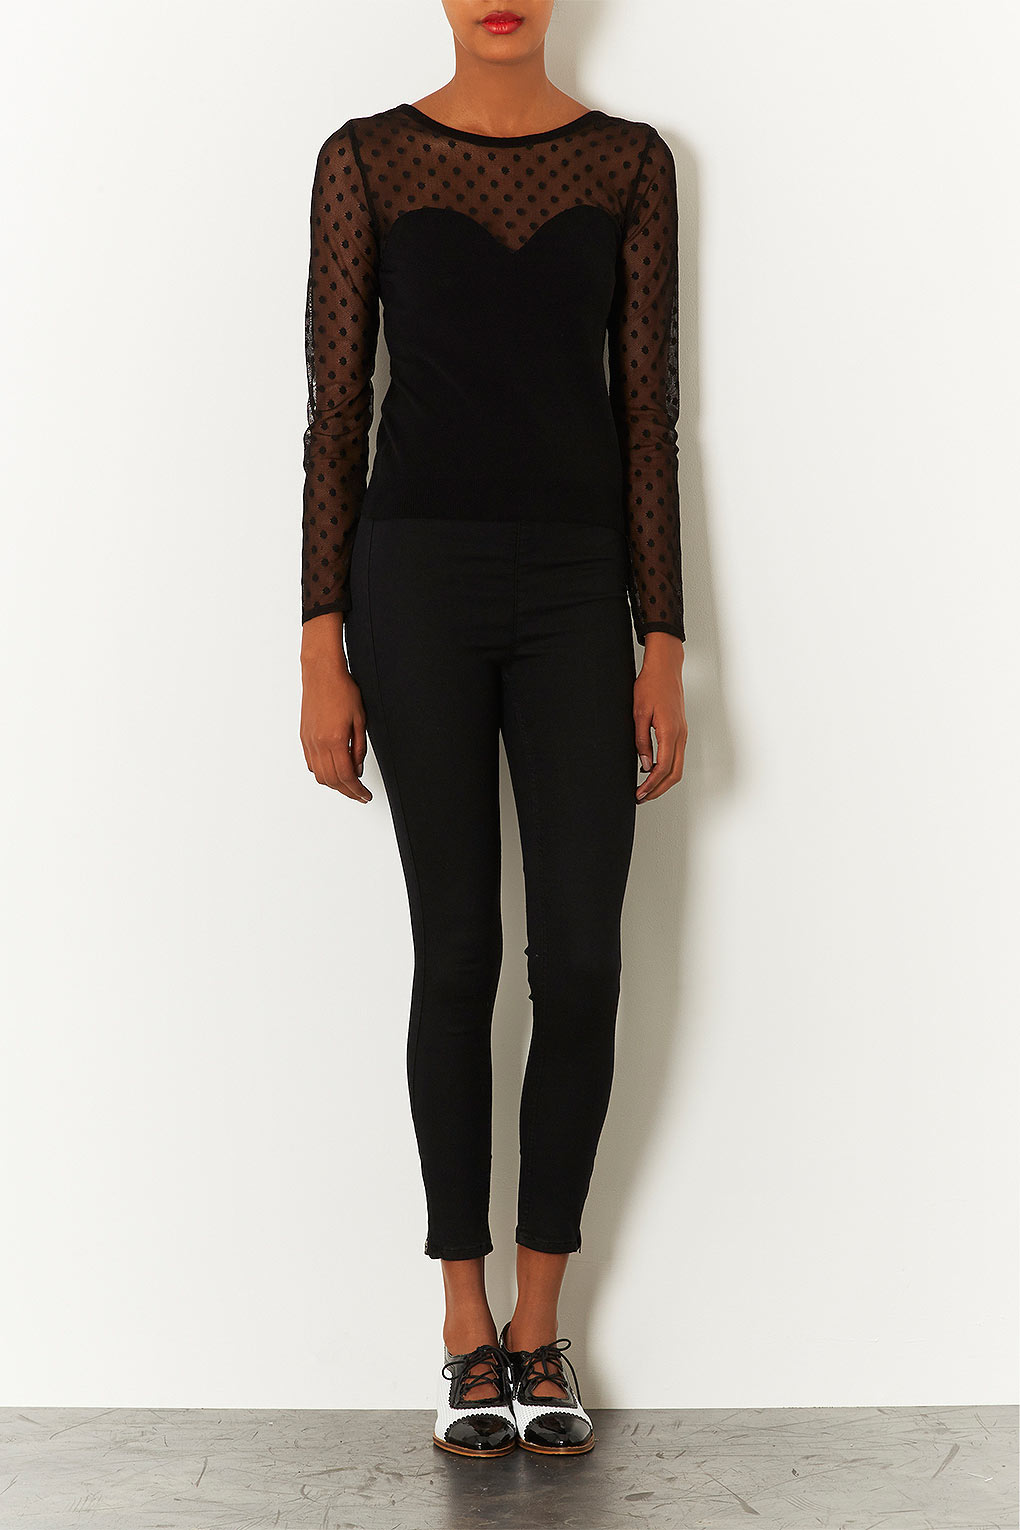 Topshop Moto Zip Side Black Joni Jeans in Black | Lyst